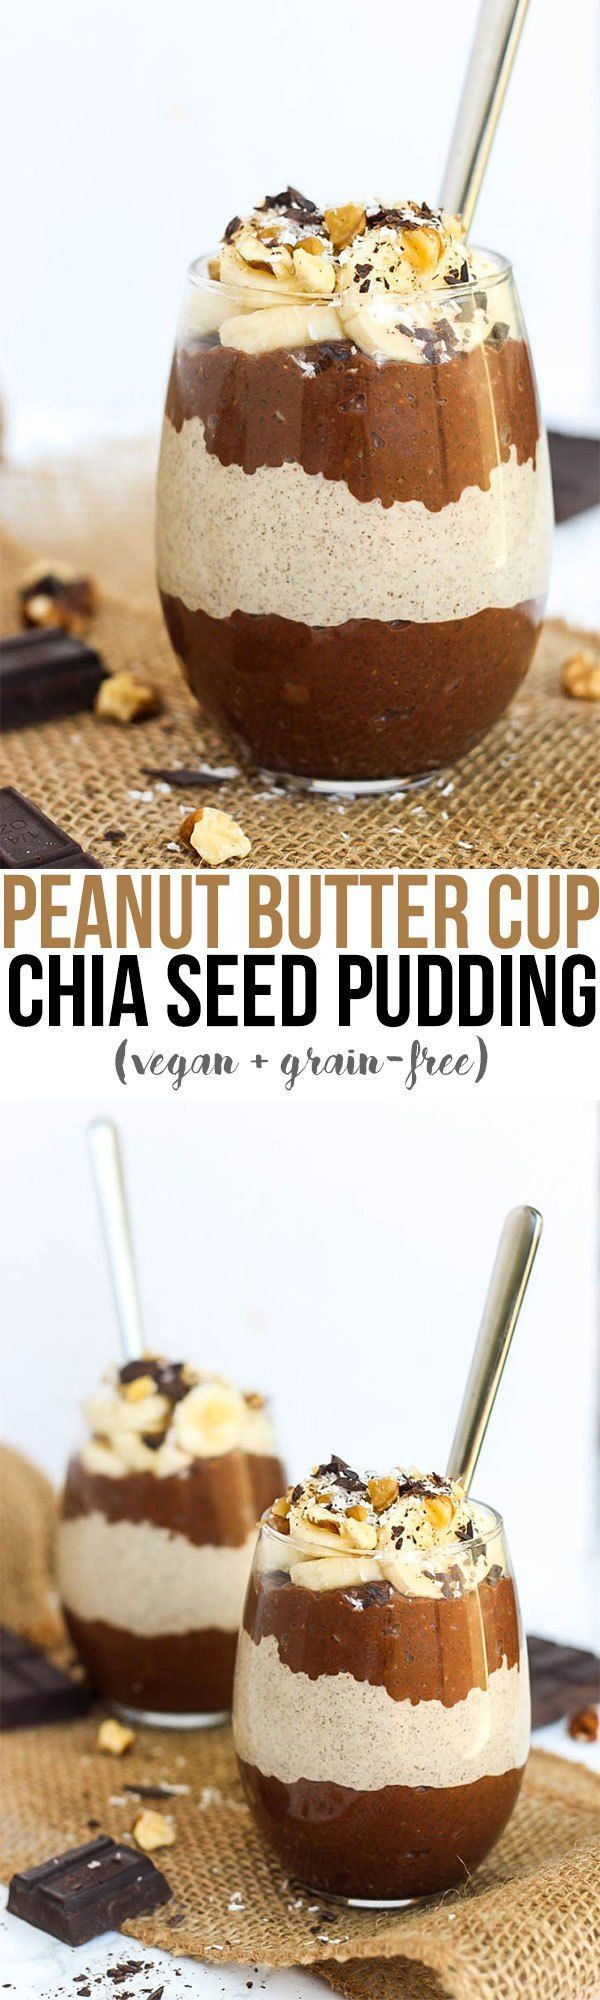 Peanut Butter Cup Chia Seed Pudding #healthy #dessert #recipe #vegan #chia #seed #pudding